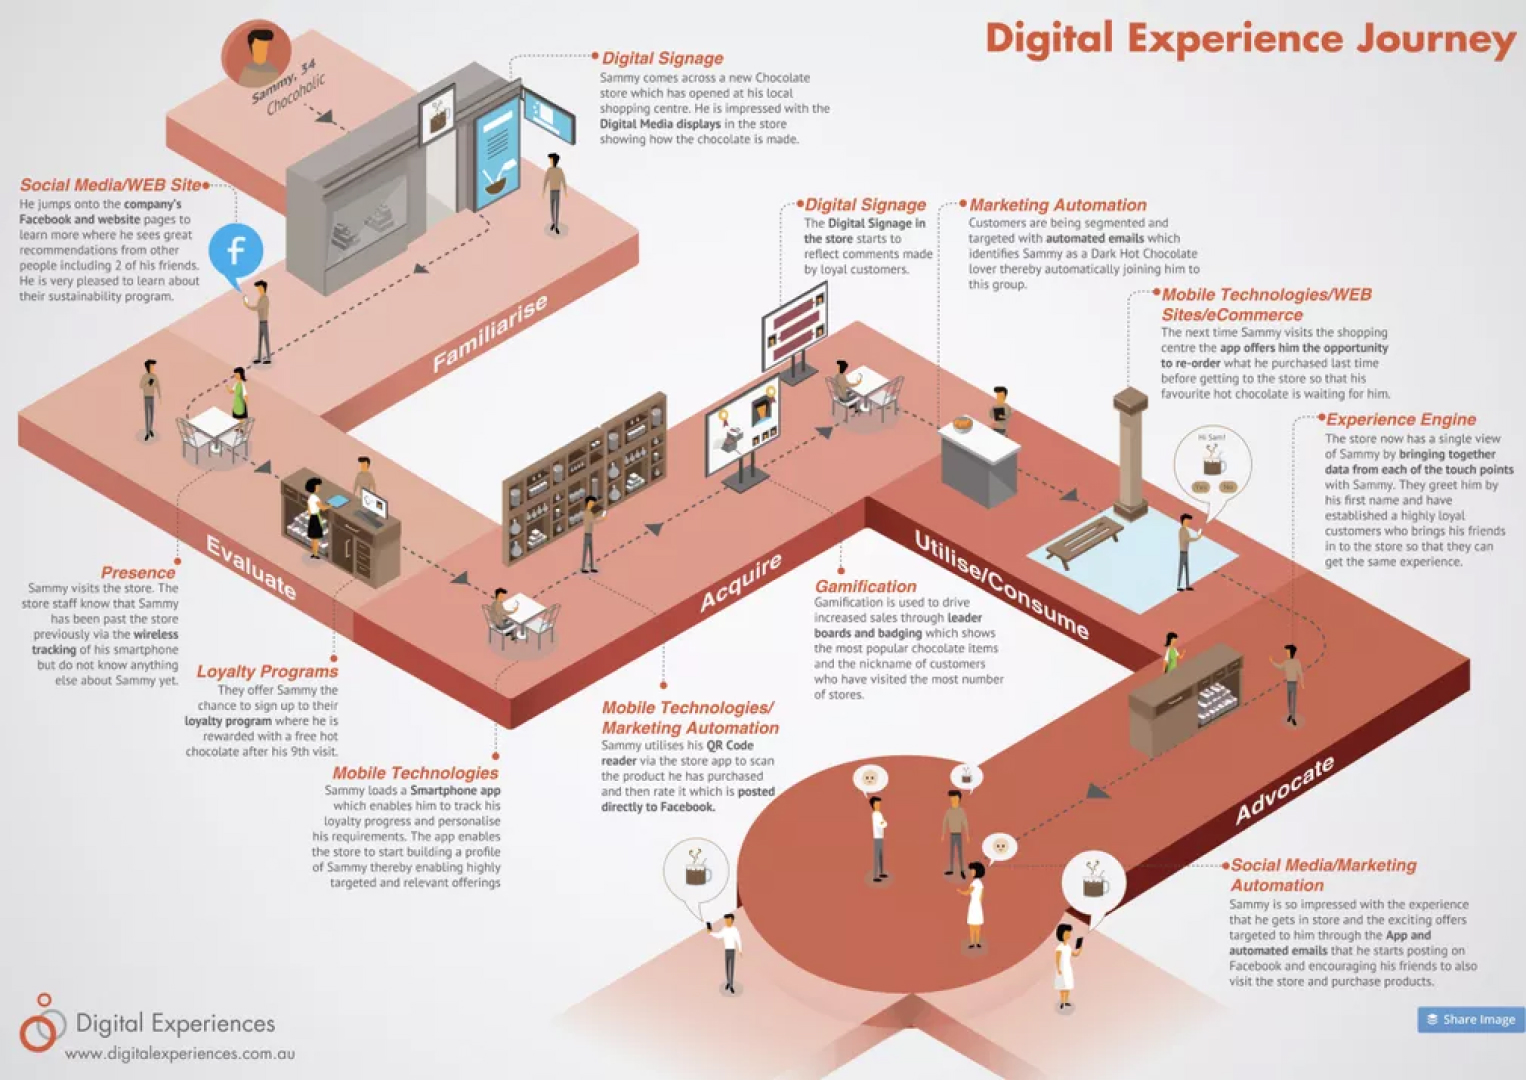 The digital experience journey moves from social media discovery through acquisition to usage and advocacy